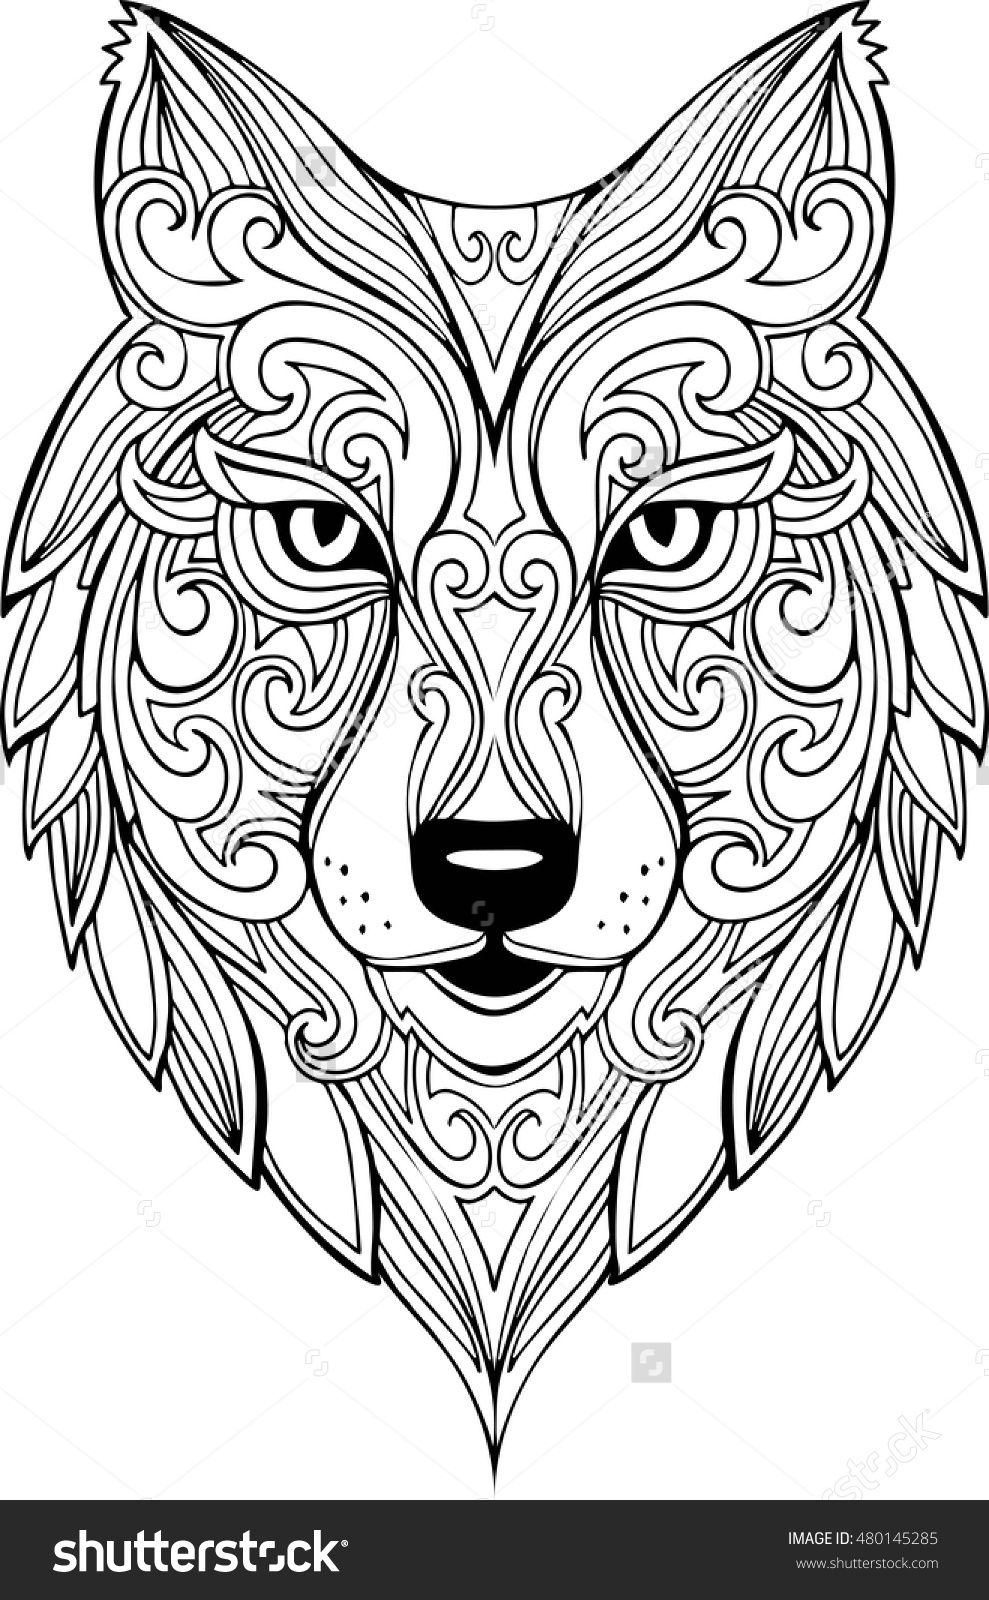 Disney zentangle coloring pages - Vector Hand Drawn Doodle Wolf Head Illustration Zentangle Decorative Wolf Head Drawing For Coloring Book